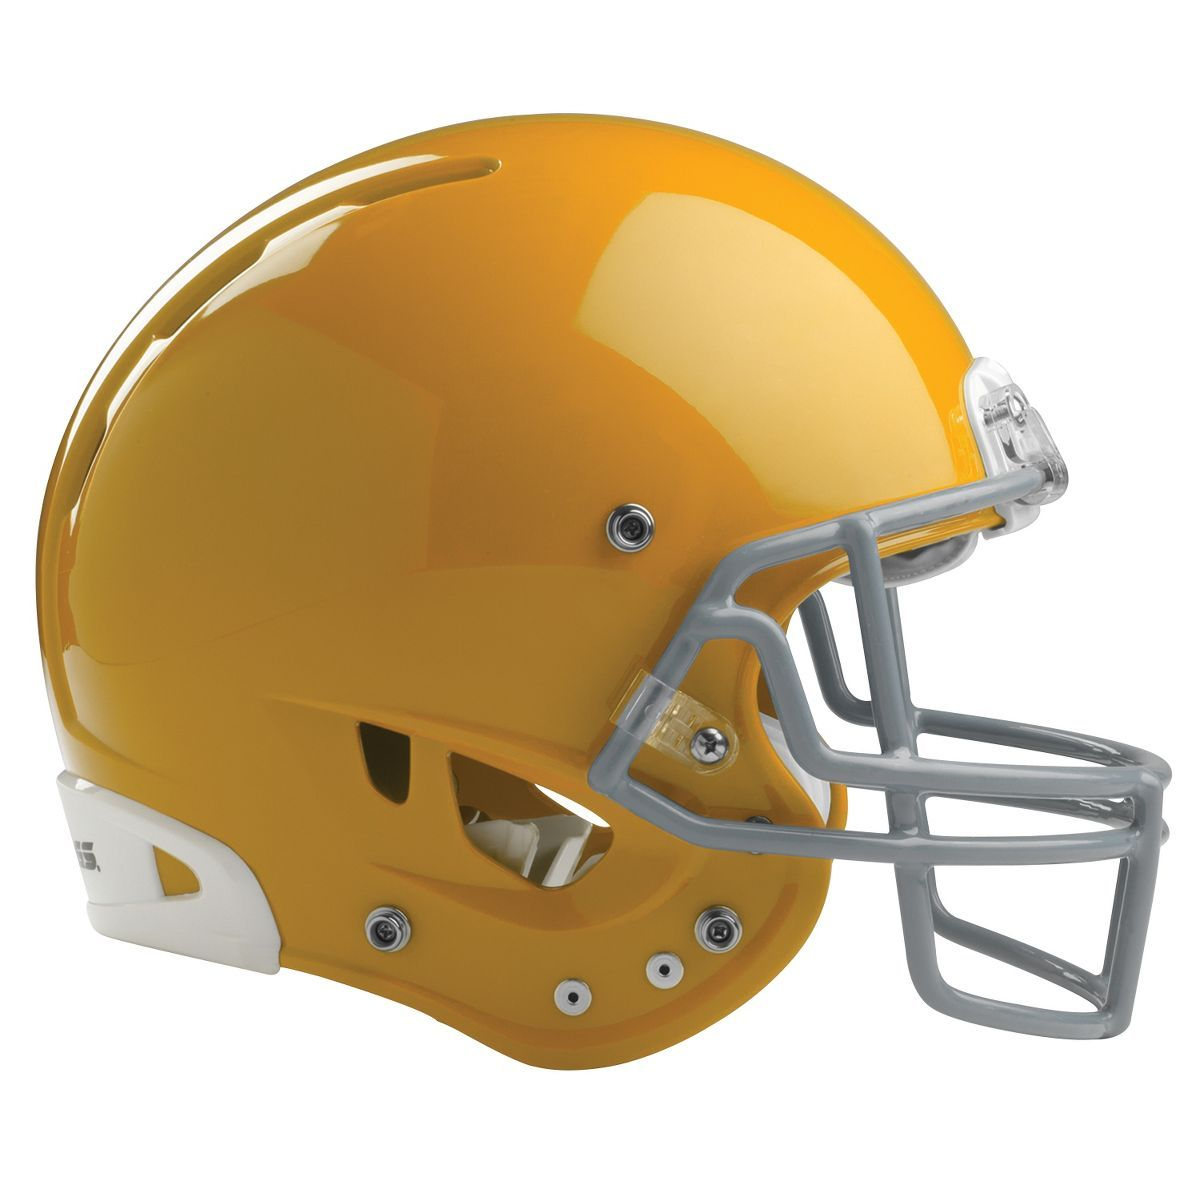 nfl elite helmets with 14665 on Ranking The College Football Bowl Teams Nos 4150 besides Halo 4 Ch ions DLC Prefect Armor Concept 410850342 further 50 Most Engaging College Logos moreover 7015 likewise These Nfl Helmet Concept Designs Are Definitely Bold 1686541504.